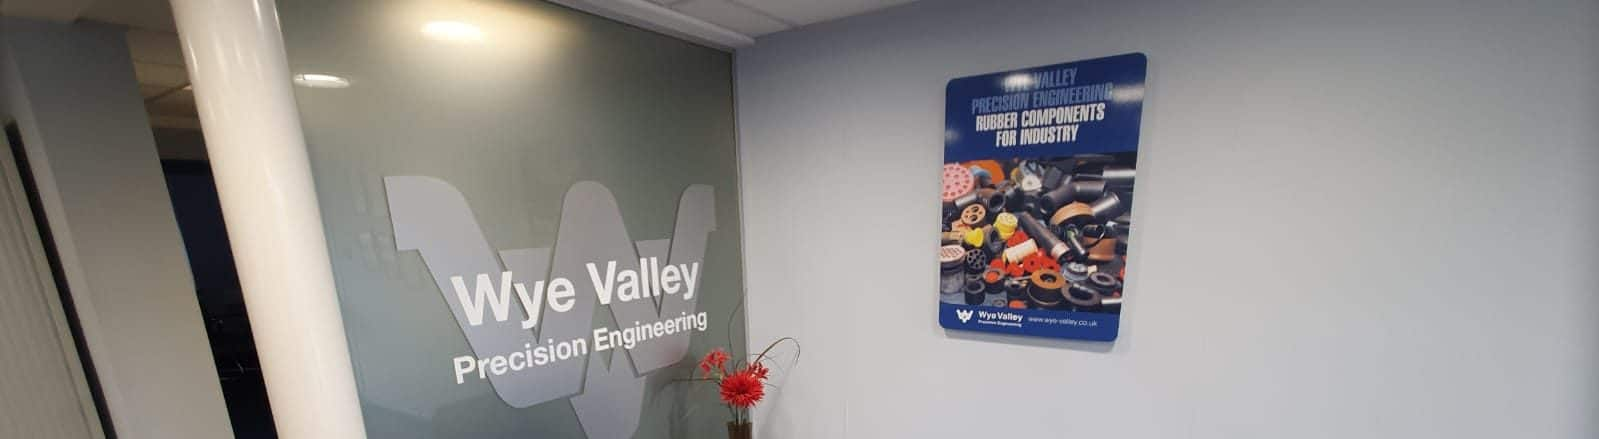 Wye Valley Precision Engineering have been awarded a new certification Thumbnail